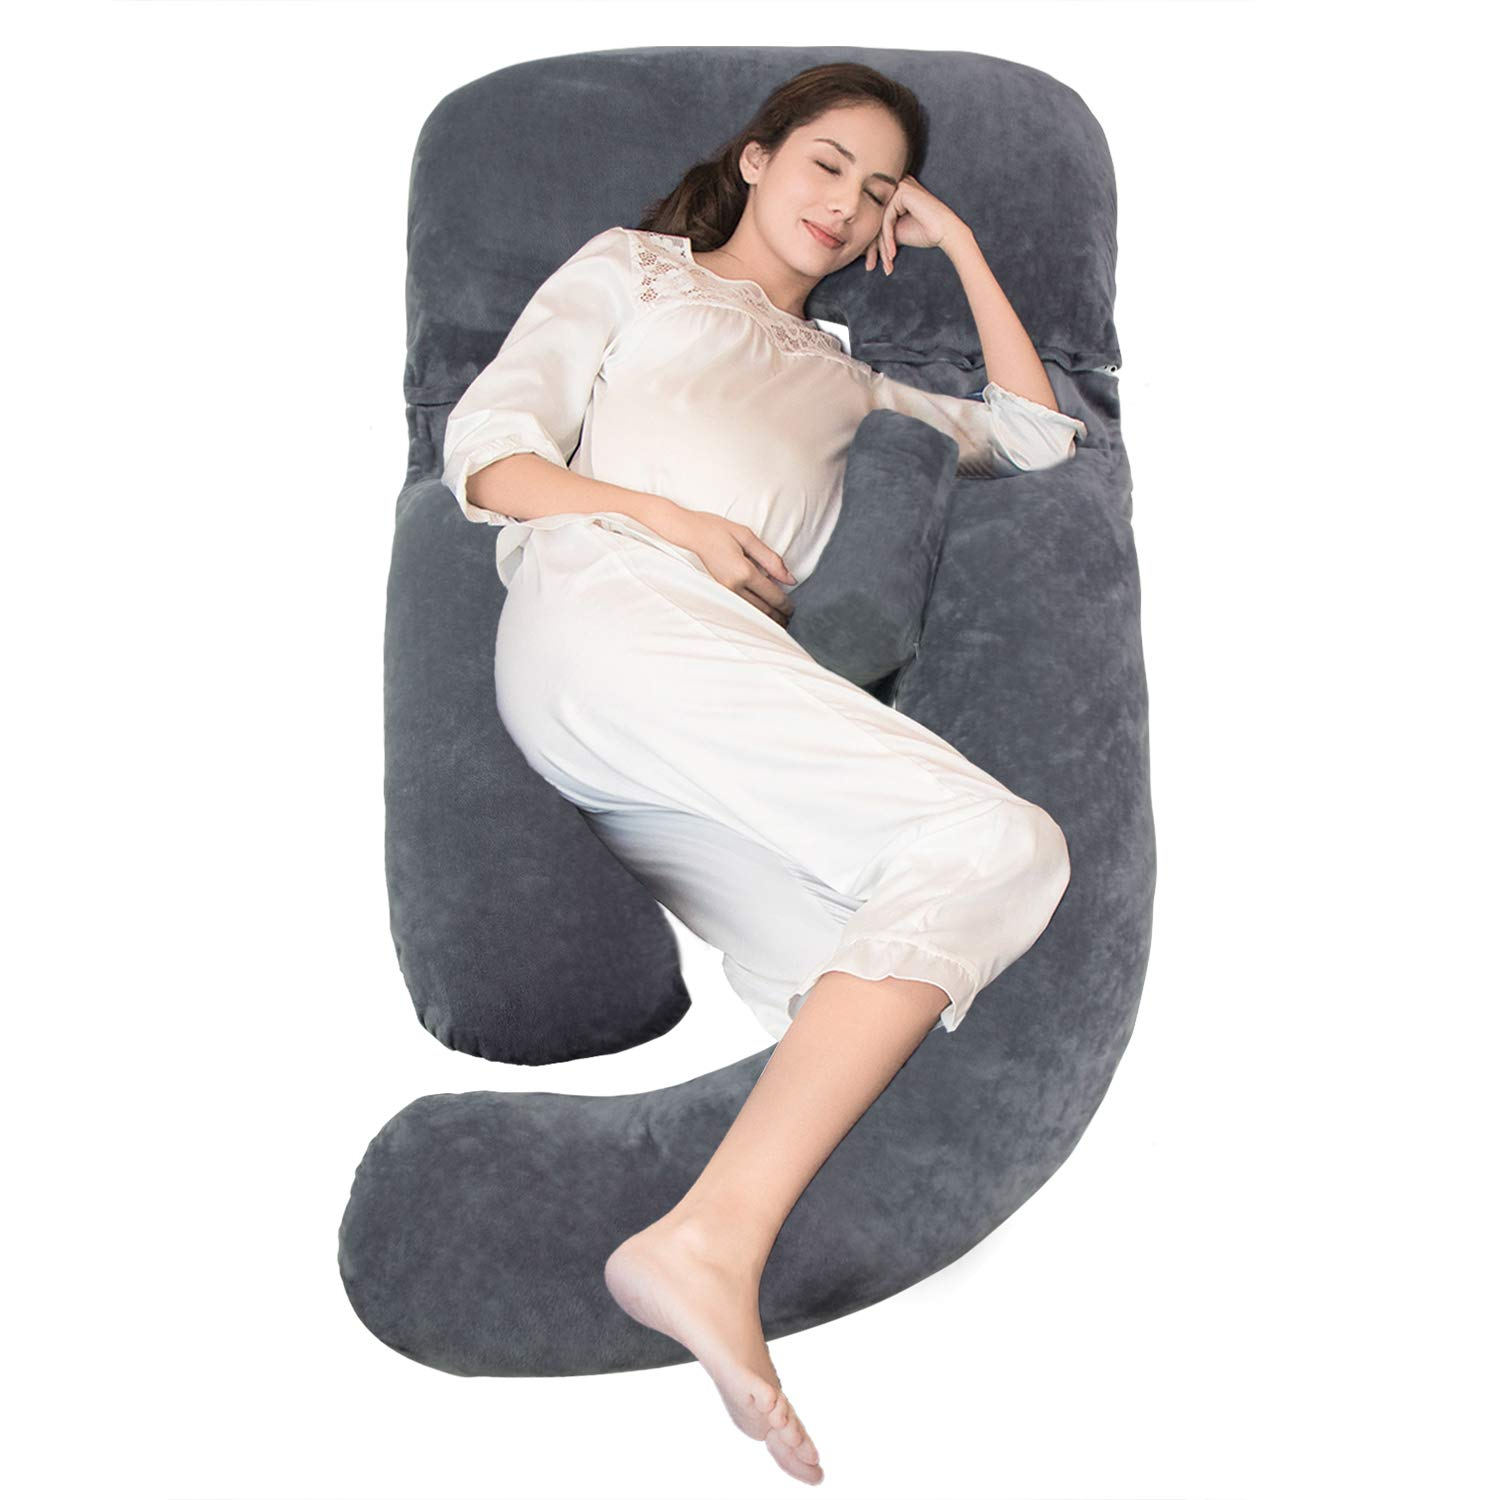 Onory Full Body Pregnancy Pillow U-Shaped Maternity Pillow Removable Velvet Cover for Sleeping with Nursing Baby Design Support for Back Belly Hips Legs (Gray, 60'')